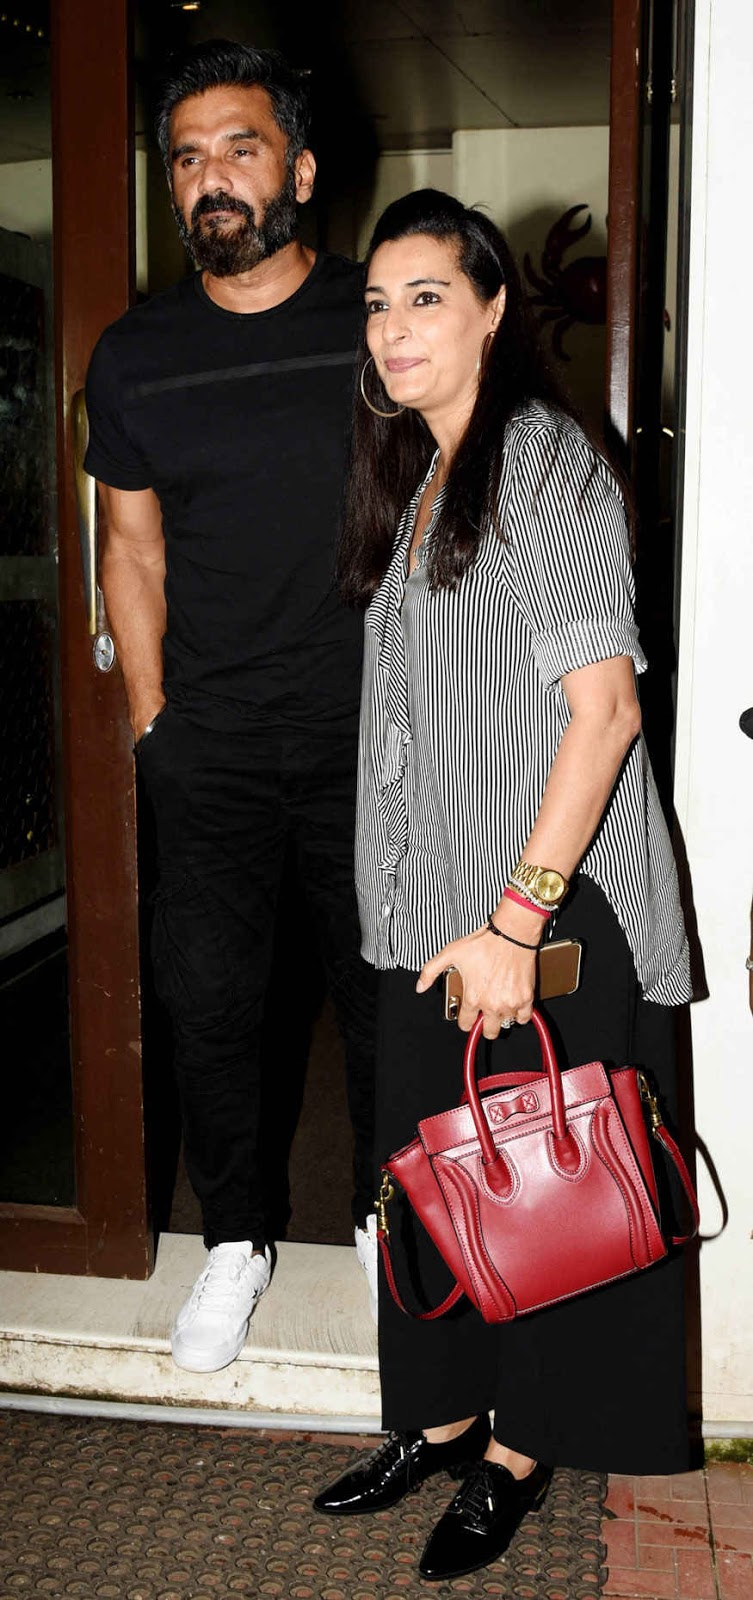 Suniel Shetty with Mana Shetty During her Birthday Party at Bestin